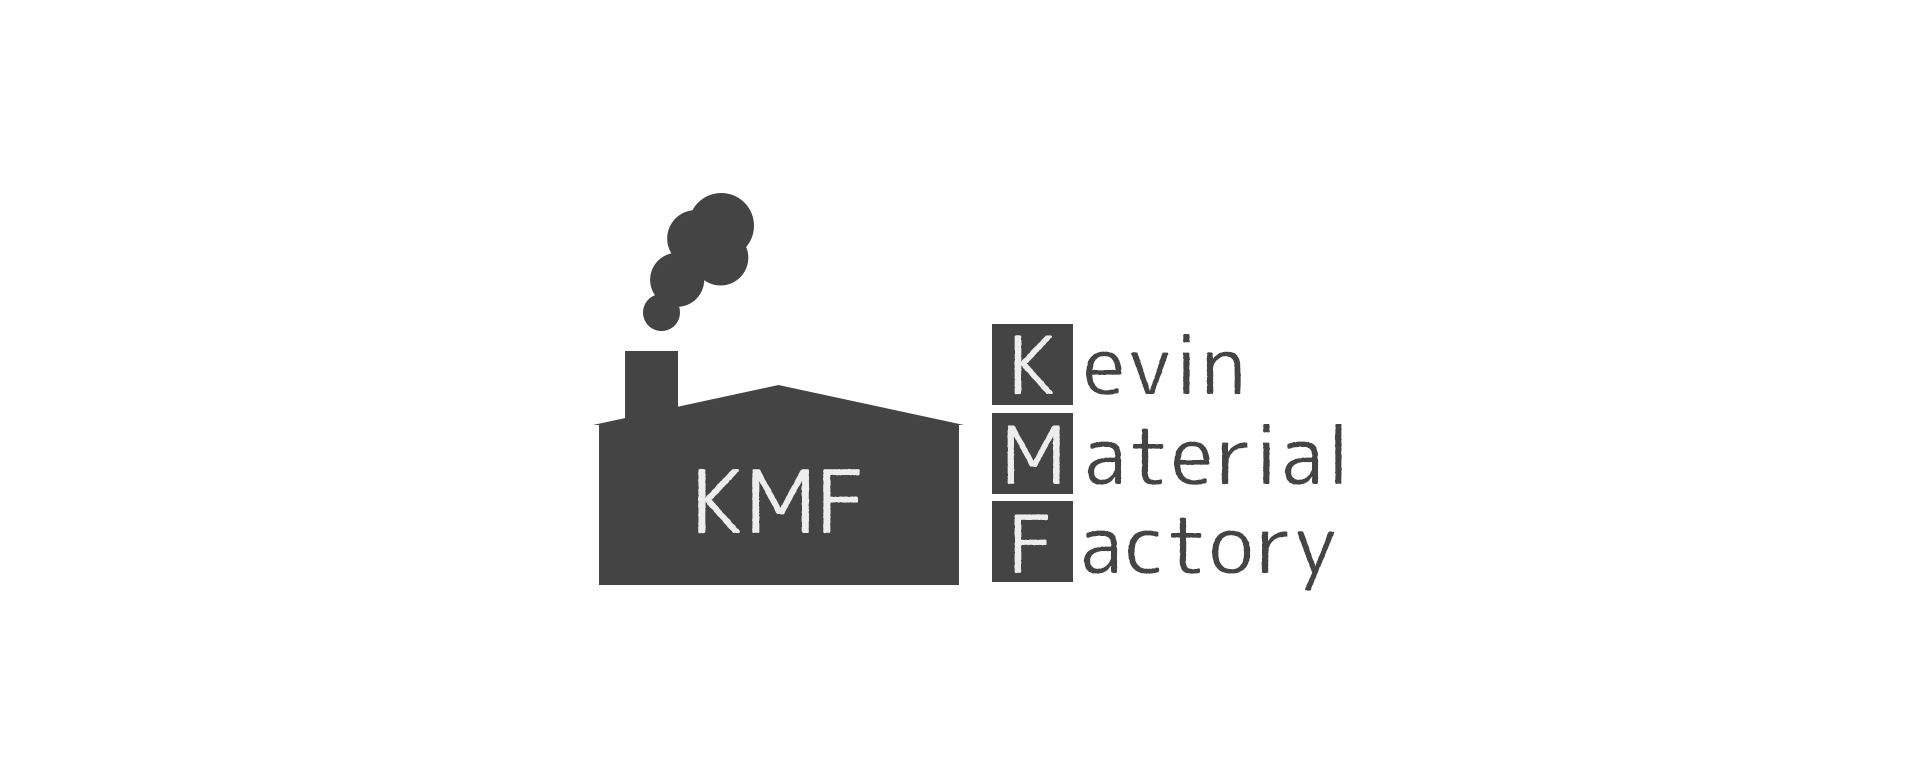 Kevin Material Factory